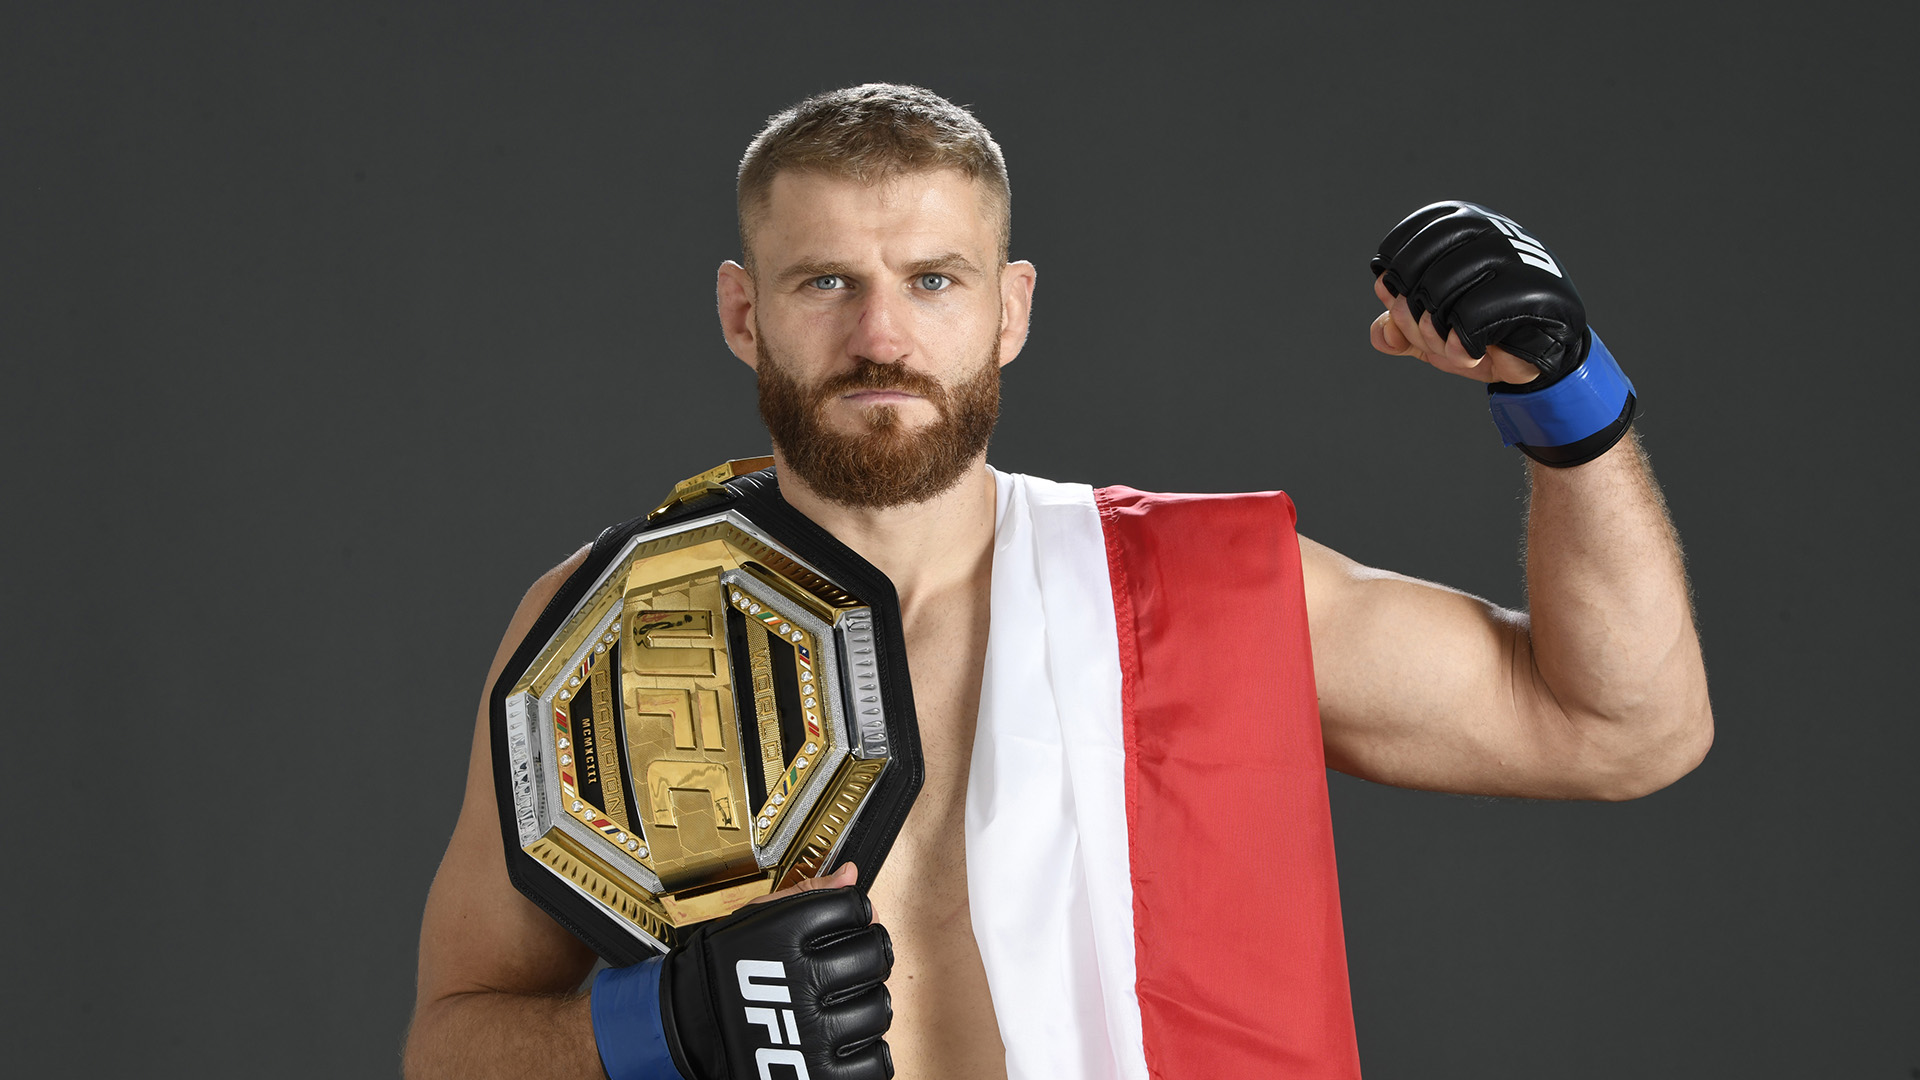 UFC news: Jan Blachowicz shared the most painful experience he has ever felt in a fight